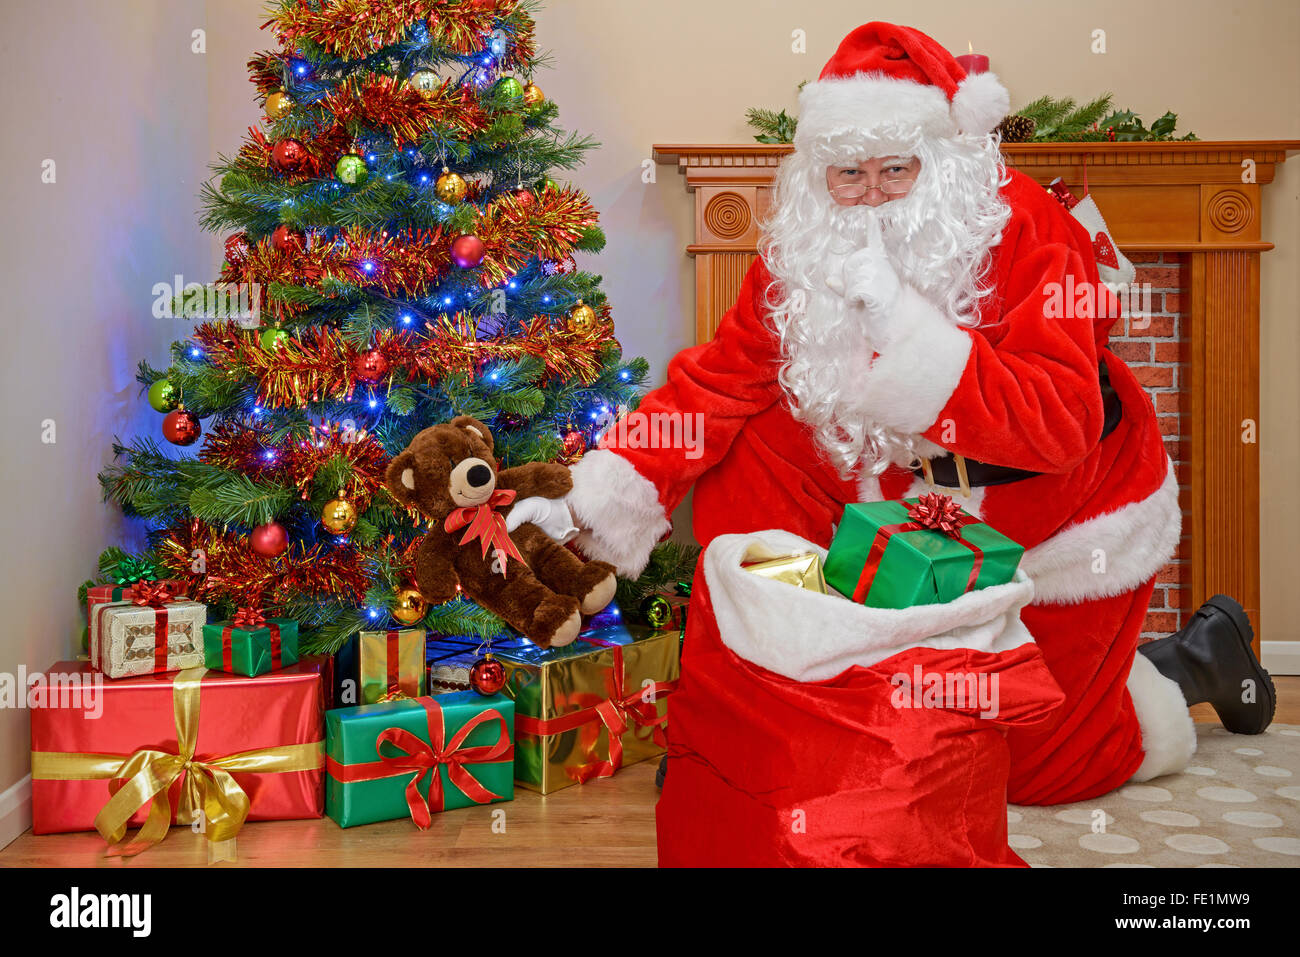 santa claus or father christmas putting presents under the tree stock photo 94695365 alamy - Santa Claus Presents